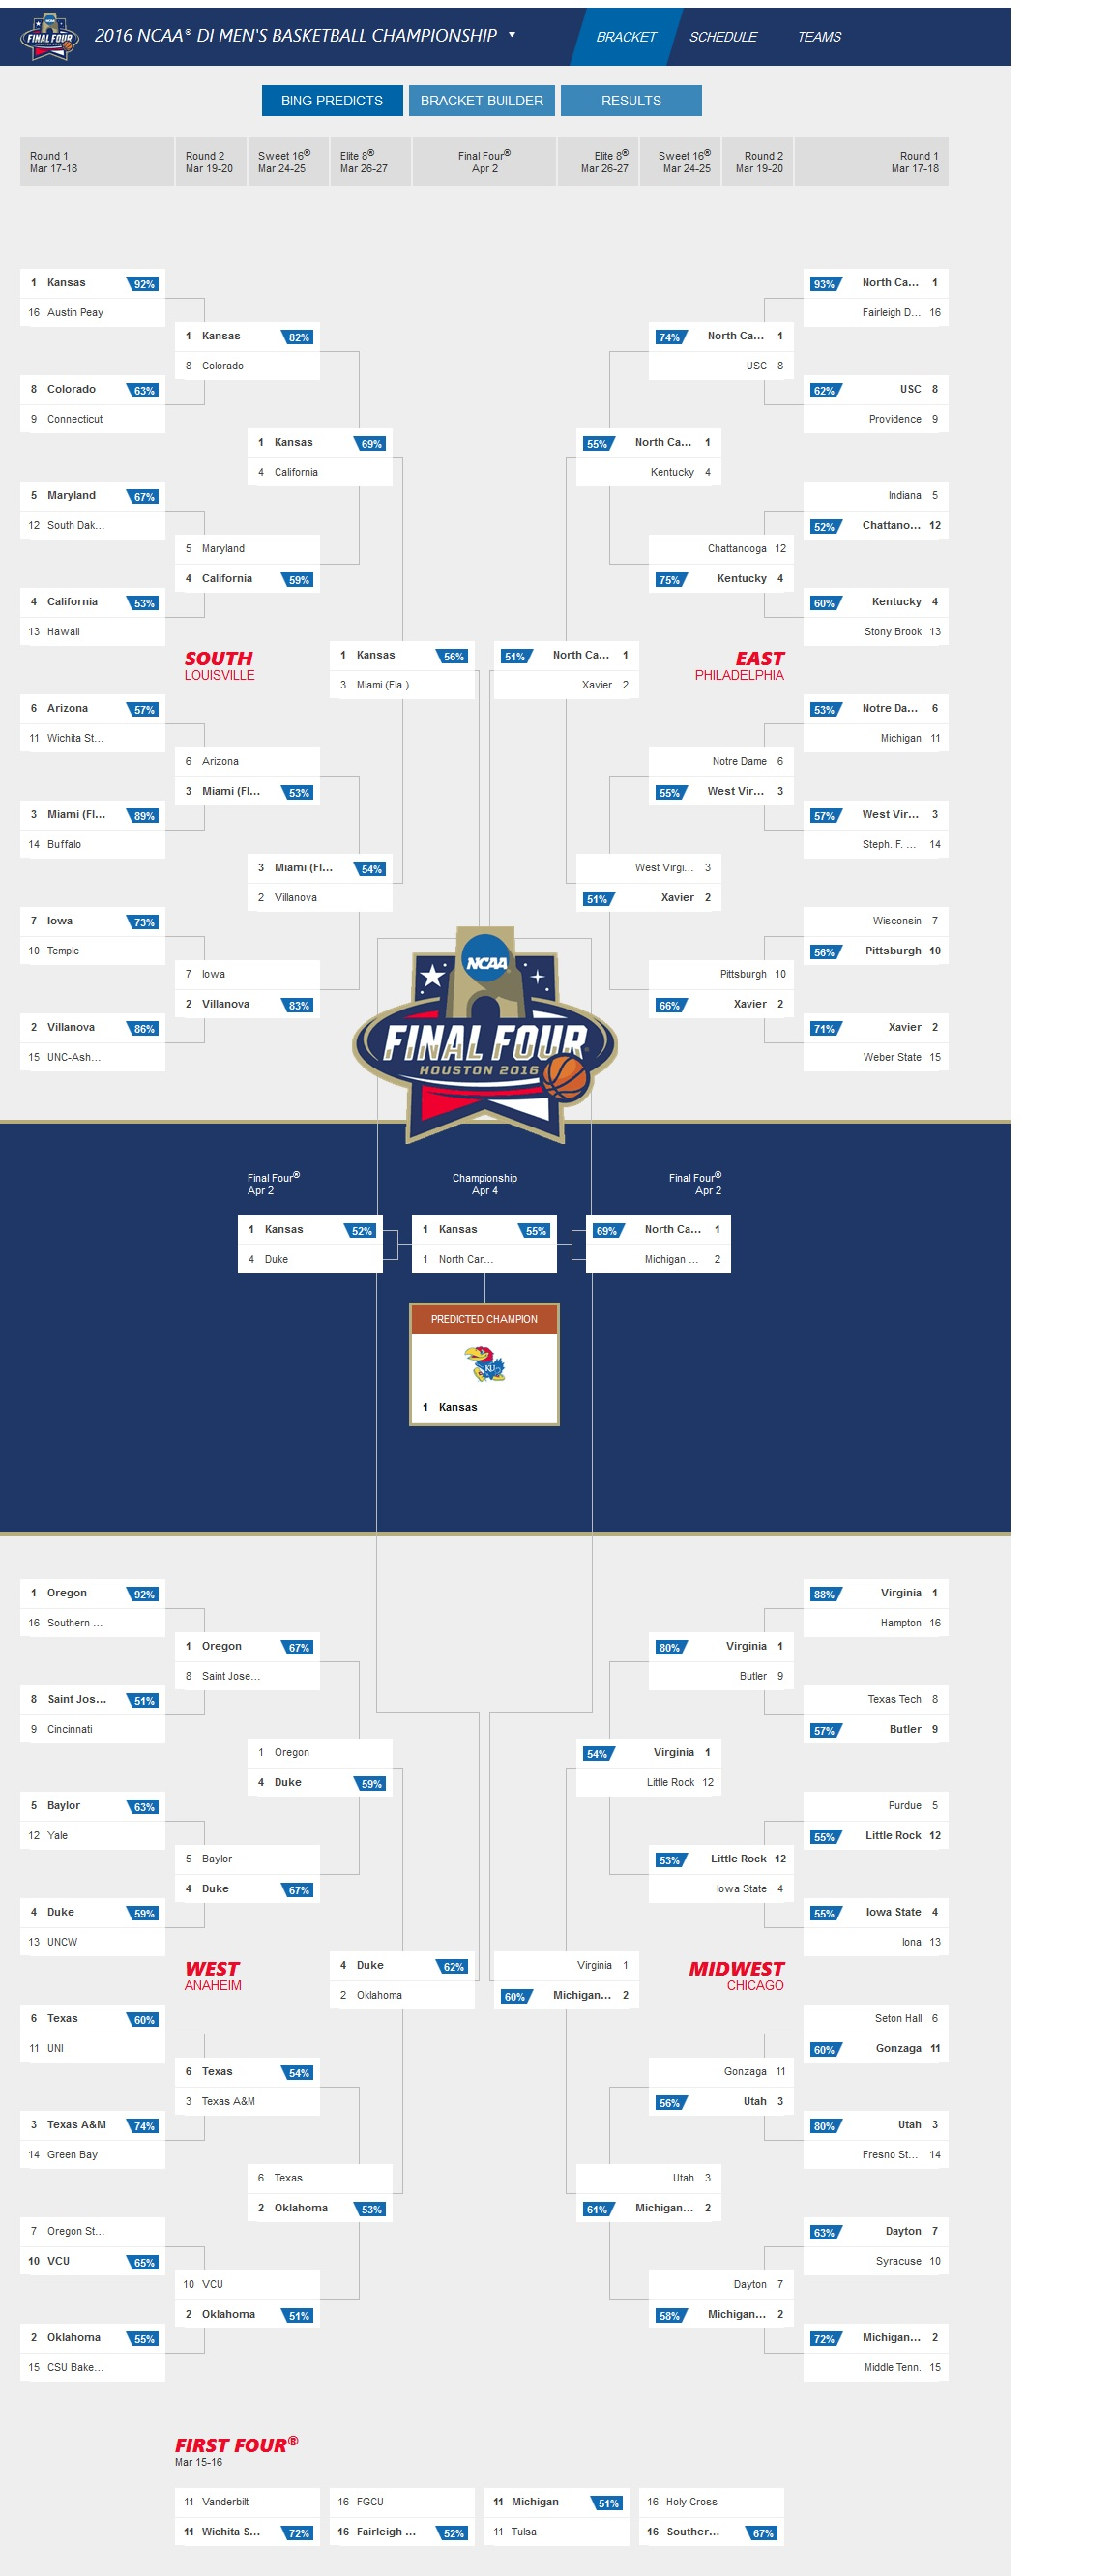 bing predicts full bracket